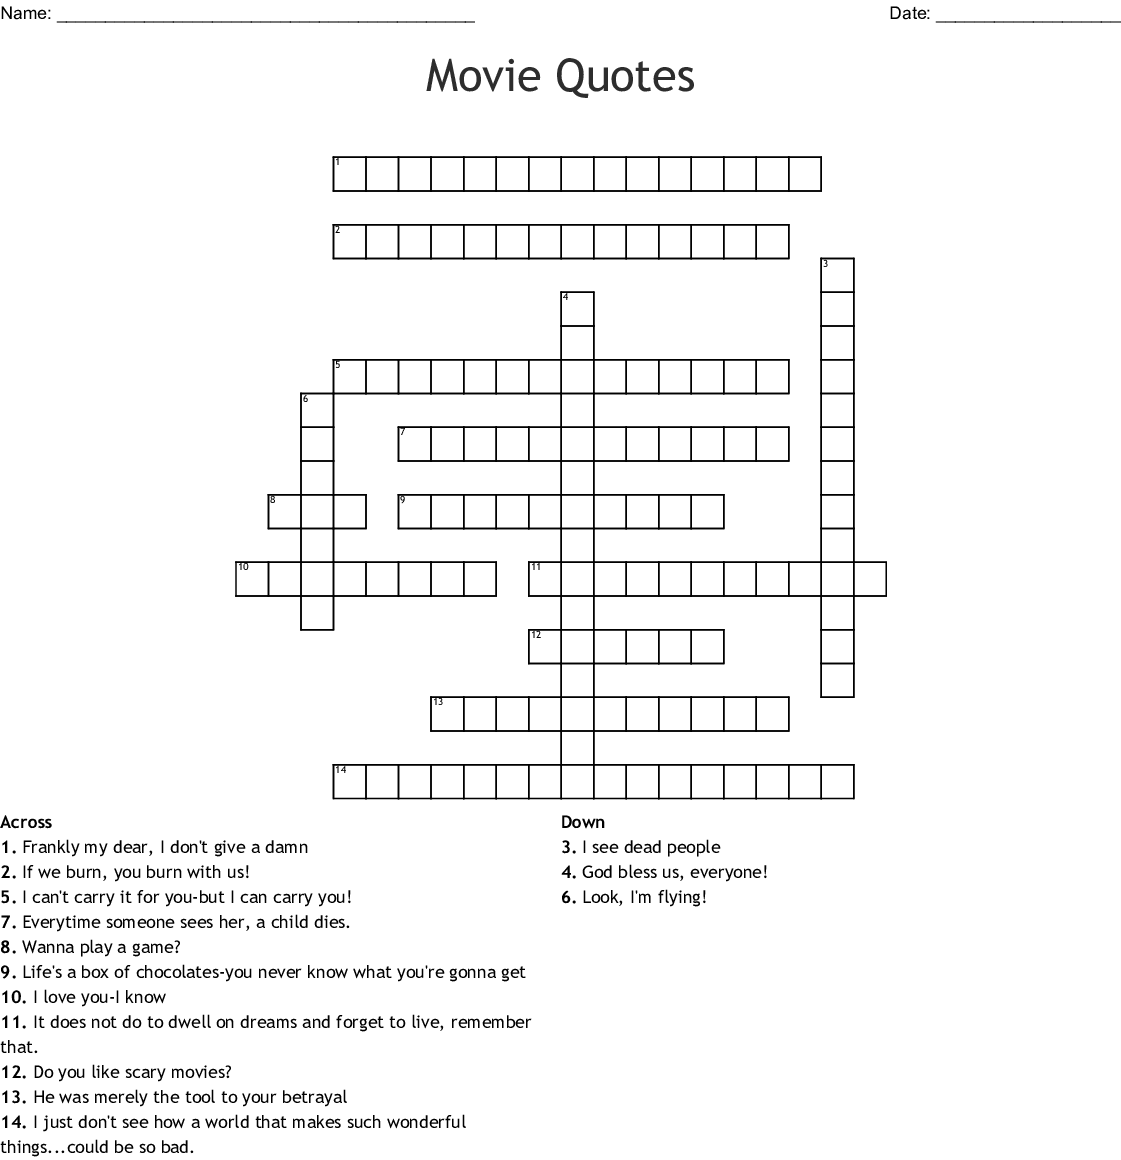 Movie Quotes Crossword Wordmint